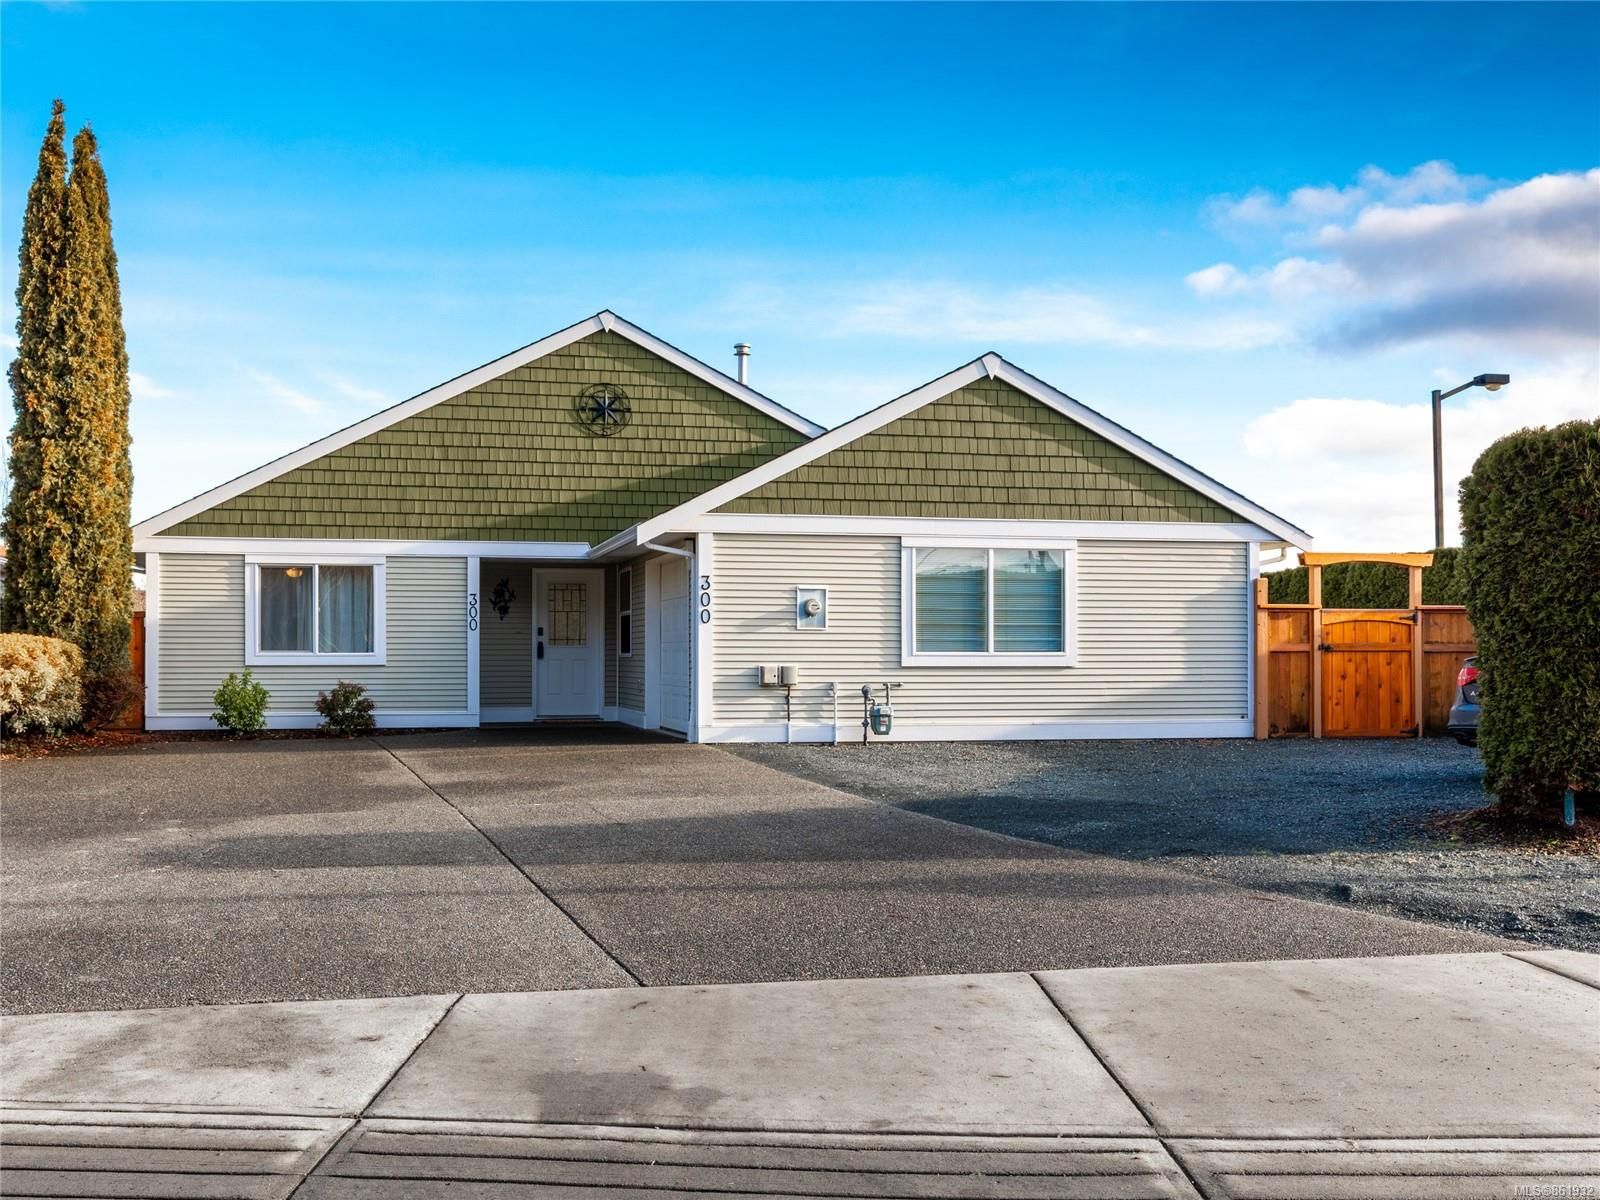 Photo 13: Photos: 300 Church Rd in : PQ Parksville House for sale (Parksville/Qualicum)  : MLS®# 861932